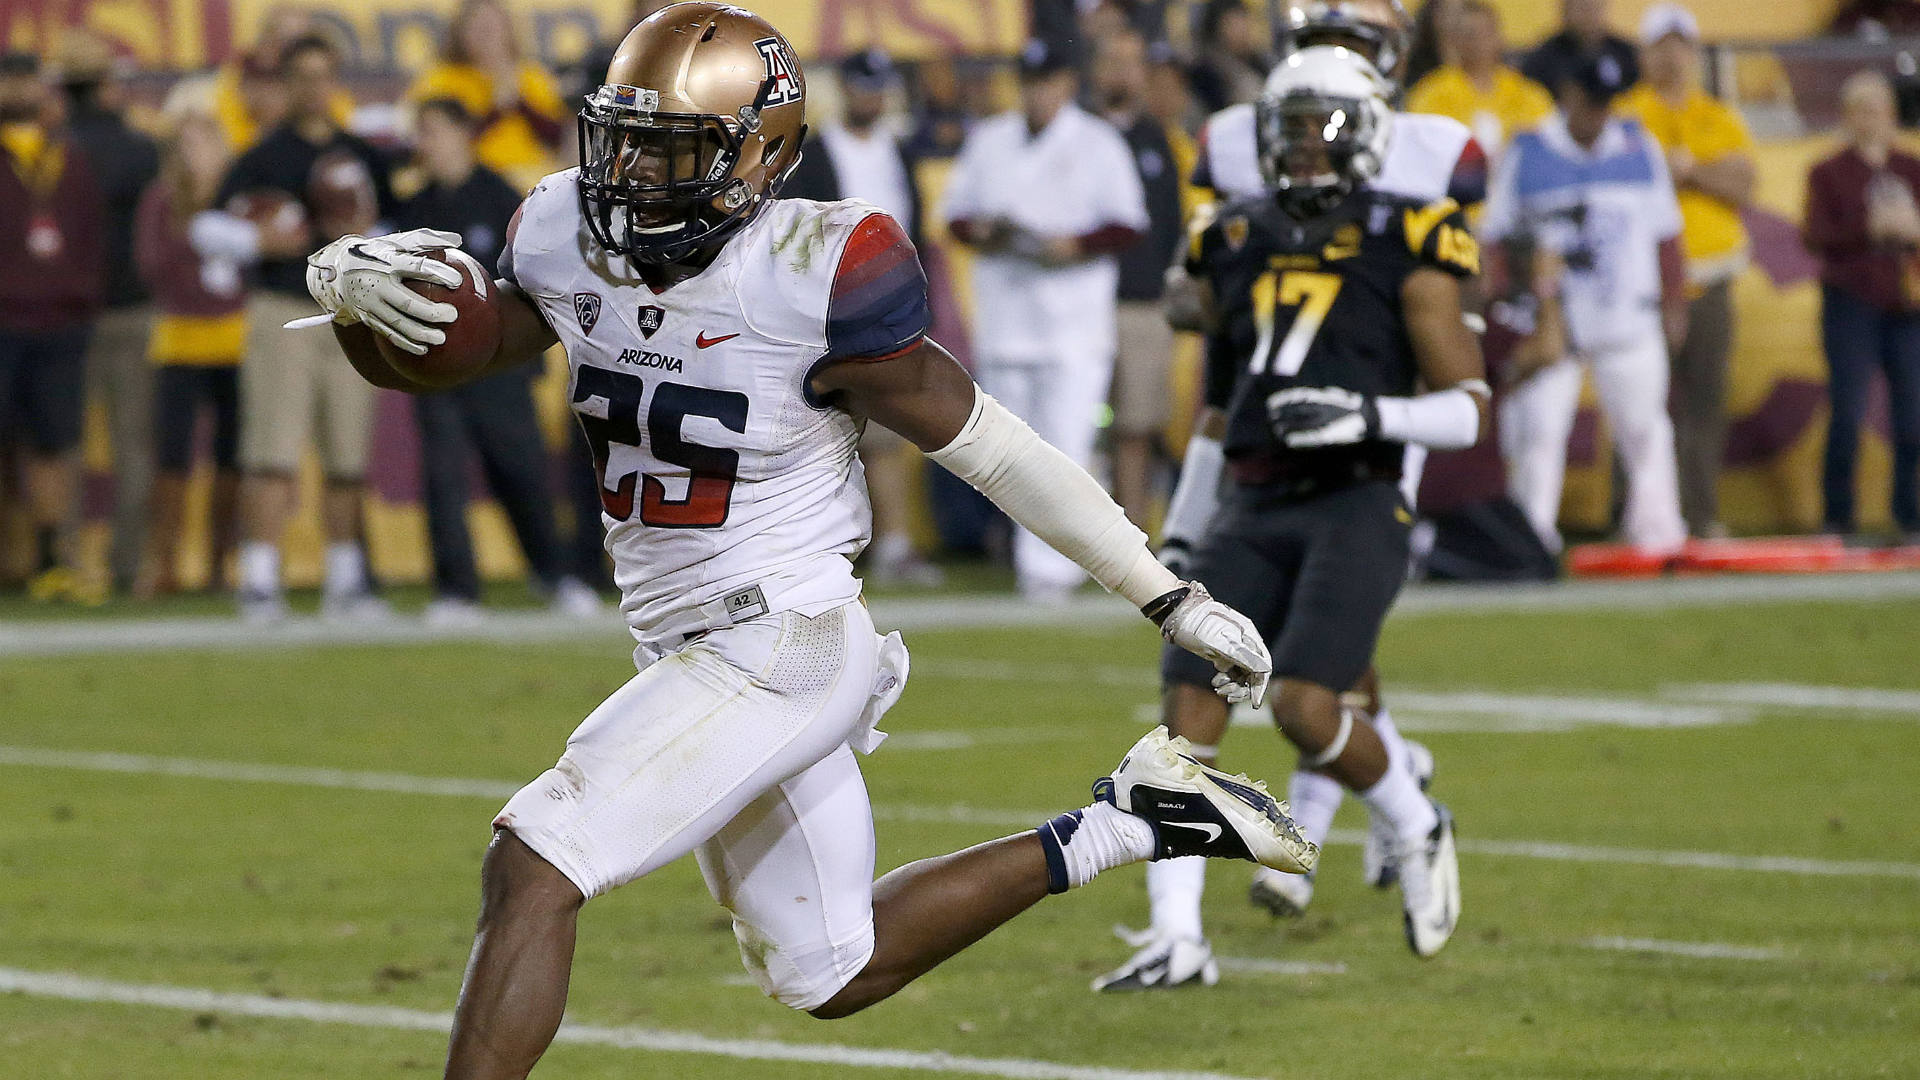 2014 NFL Draft -- Bears select RB Ka'Deem Carey in fourth round